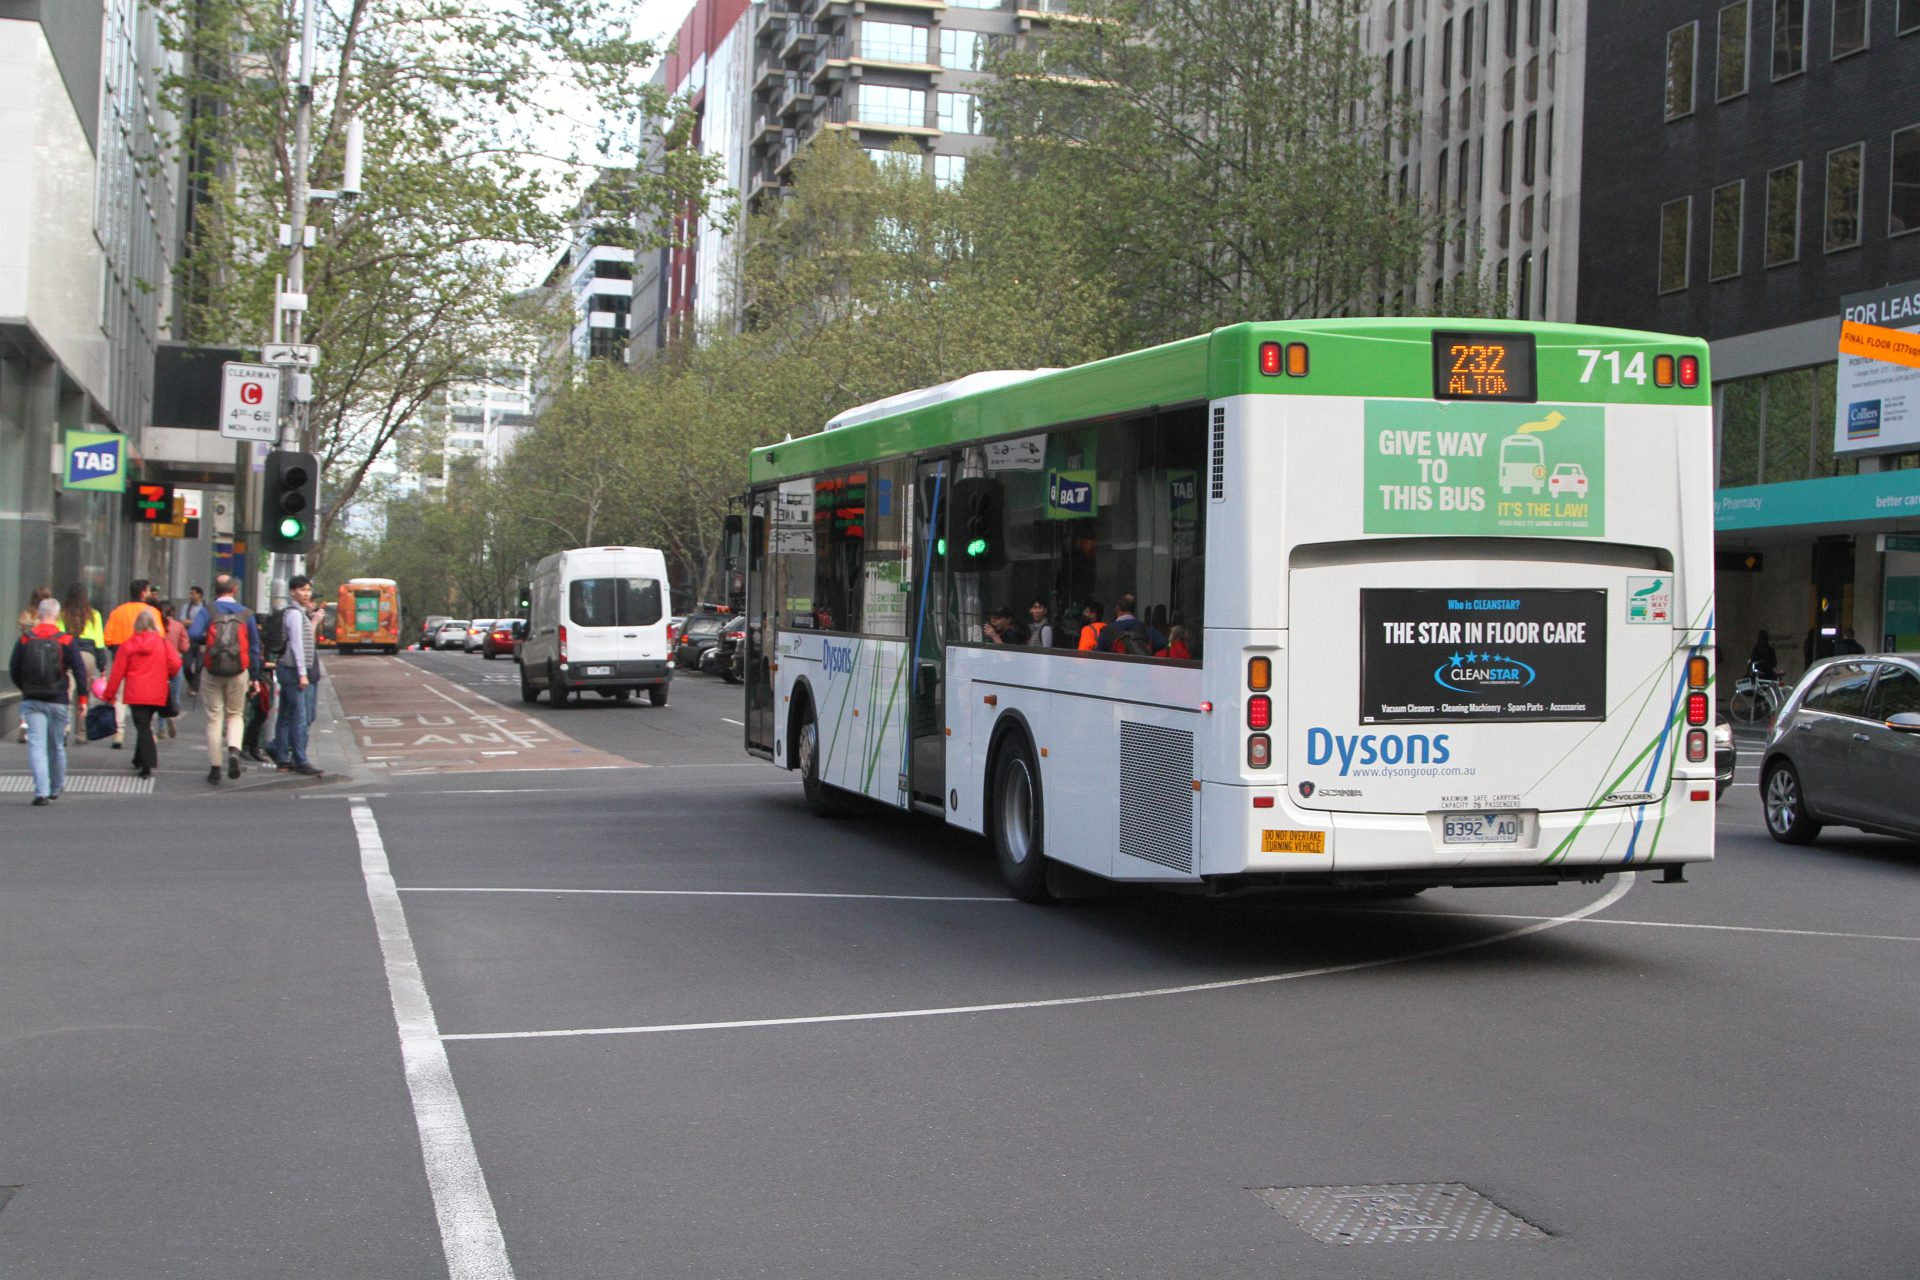 Dysons Bus 714 8392ao Heads South On Route 232 At Queen